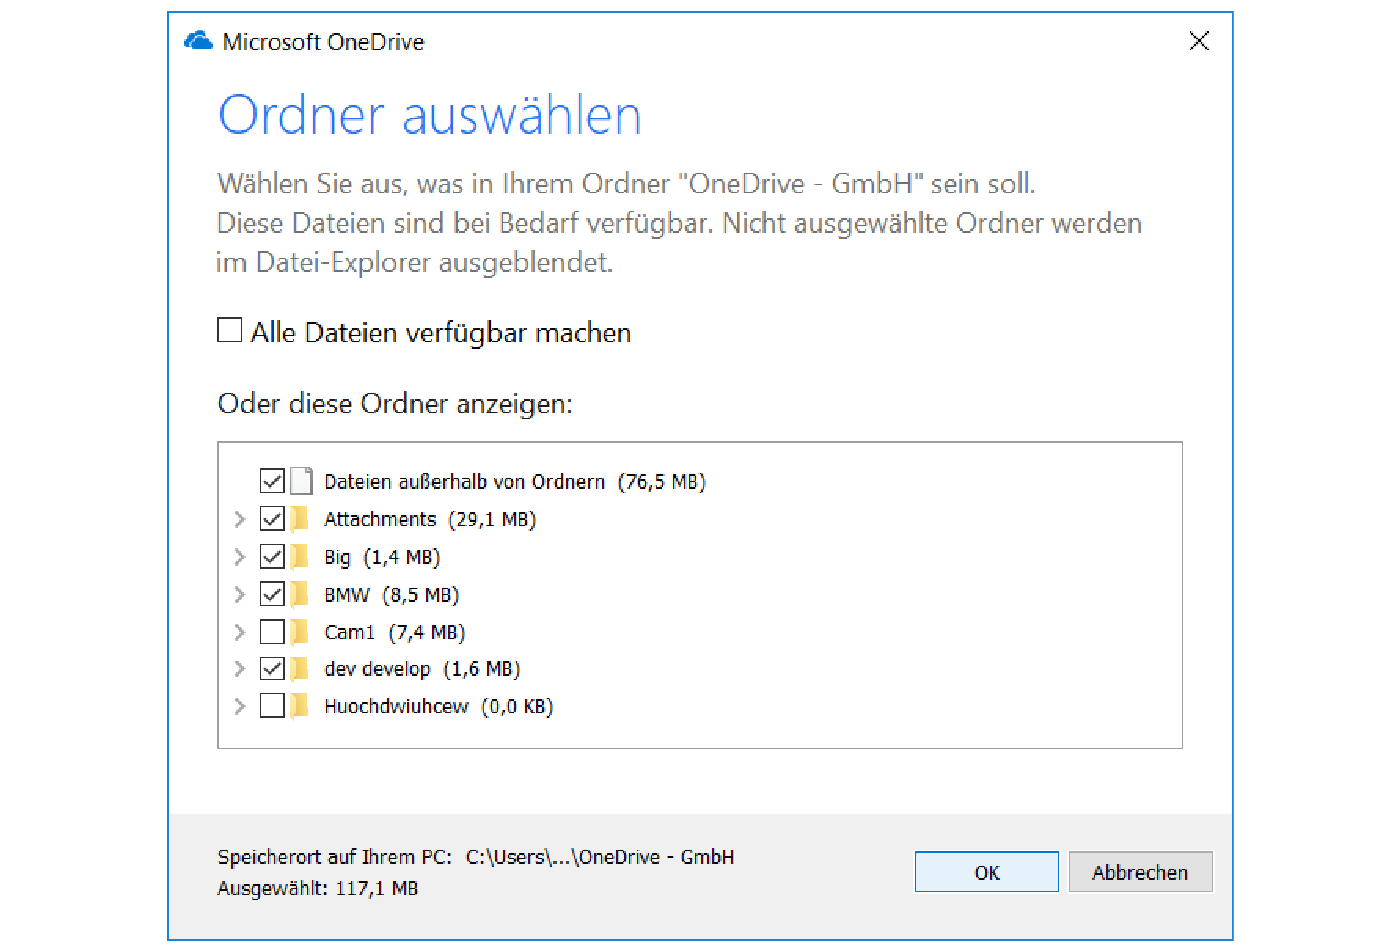 One Drive for Business client Ordner auswählen